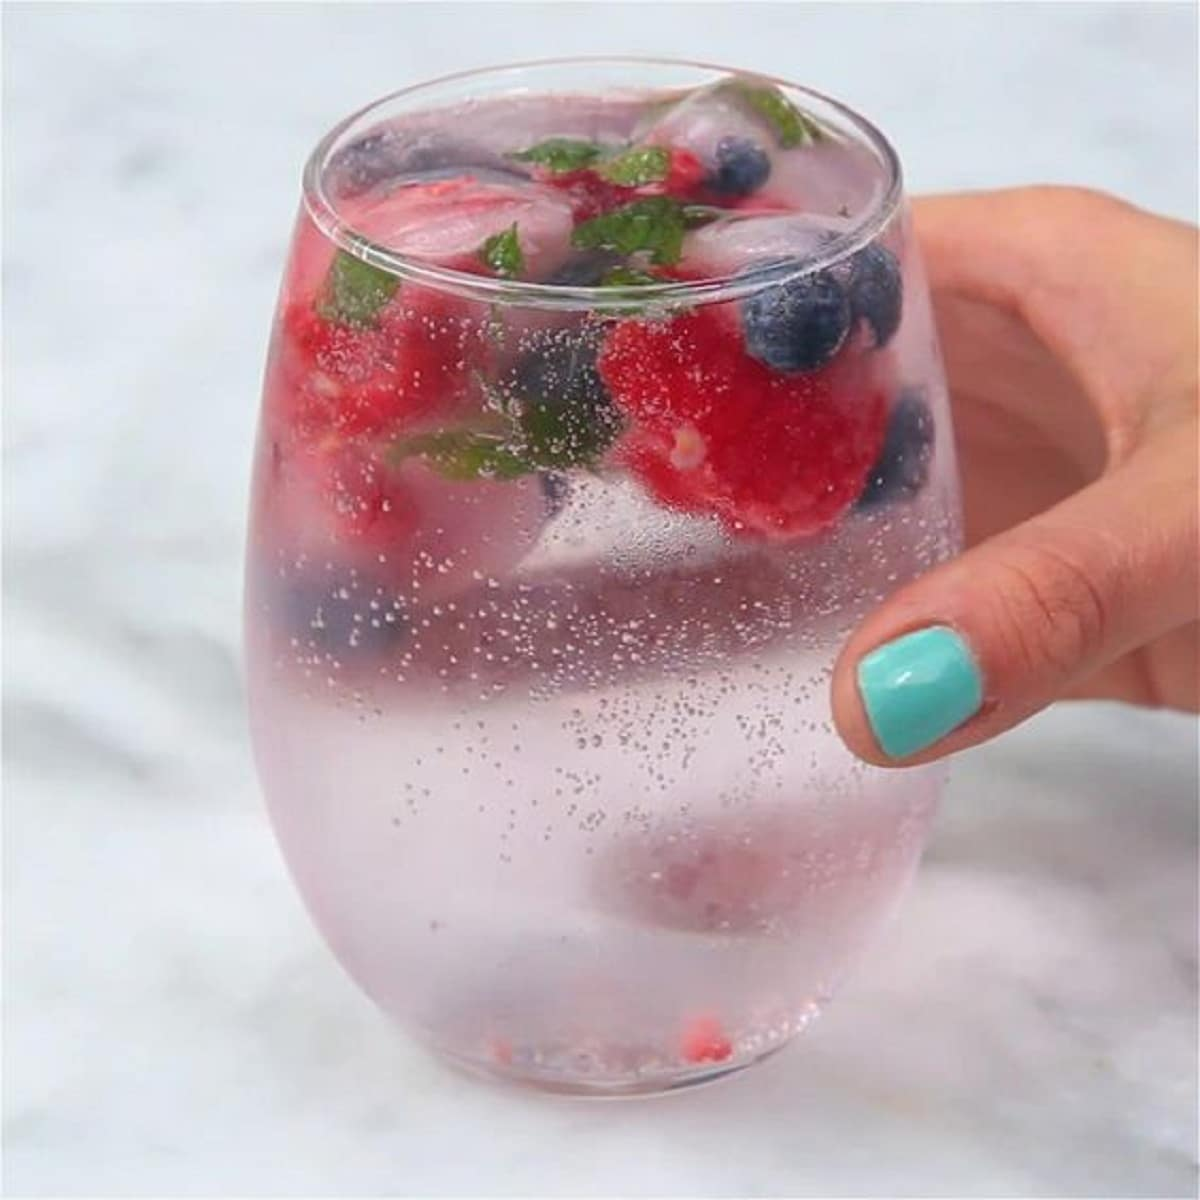 Hand with blue nail polish holding small glass filled with sparkling water and berries